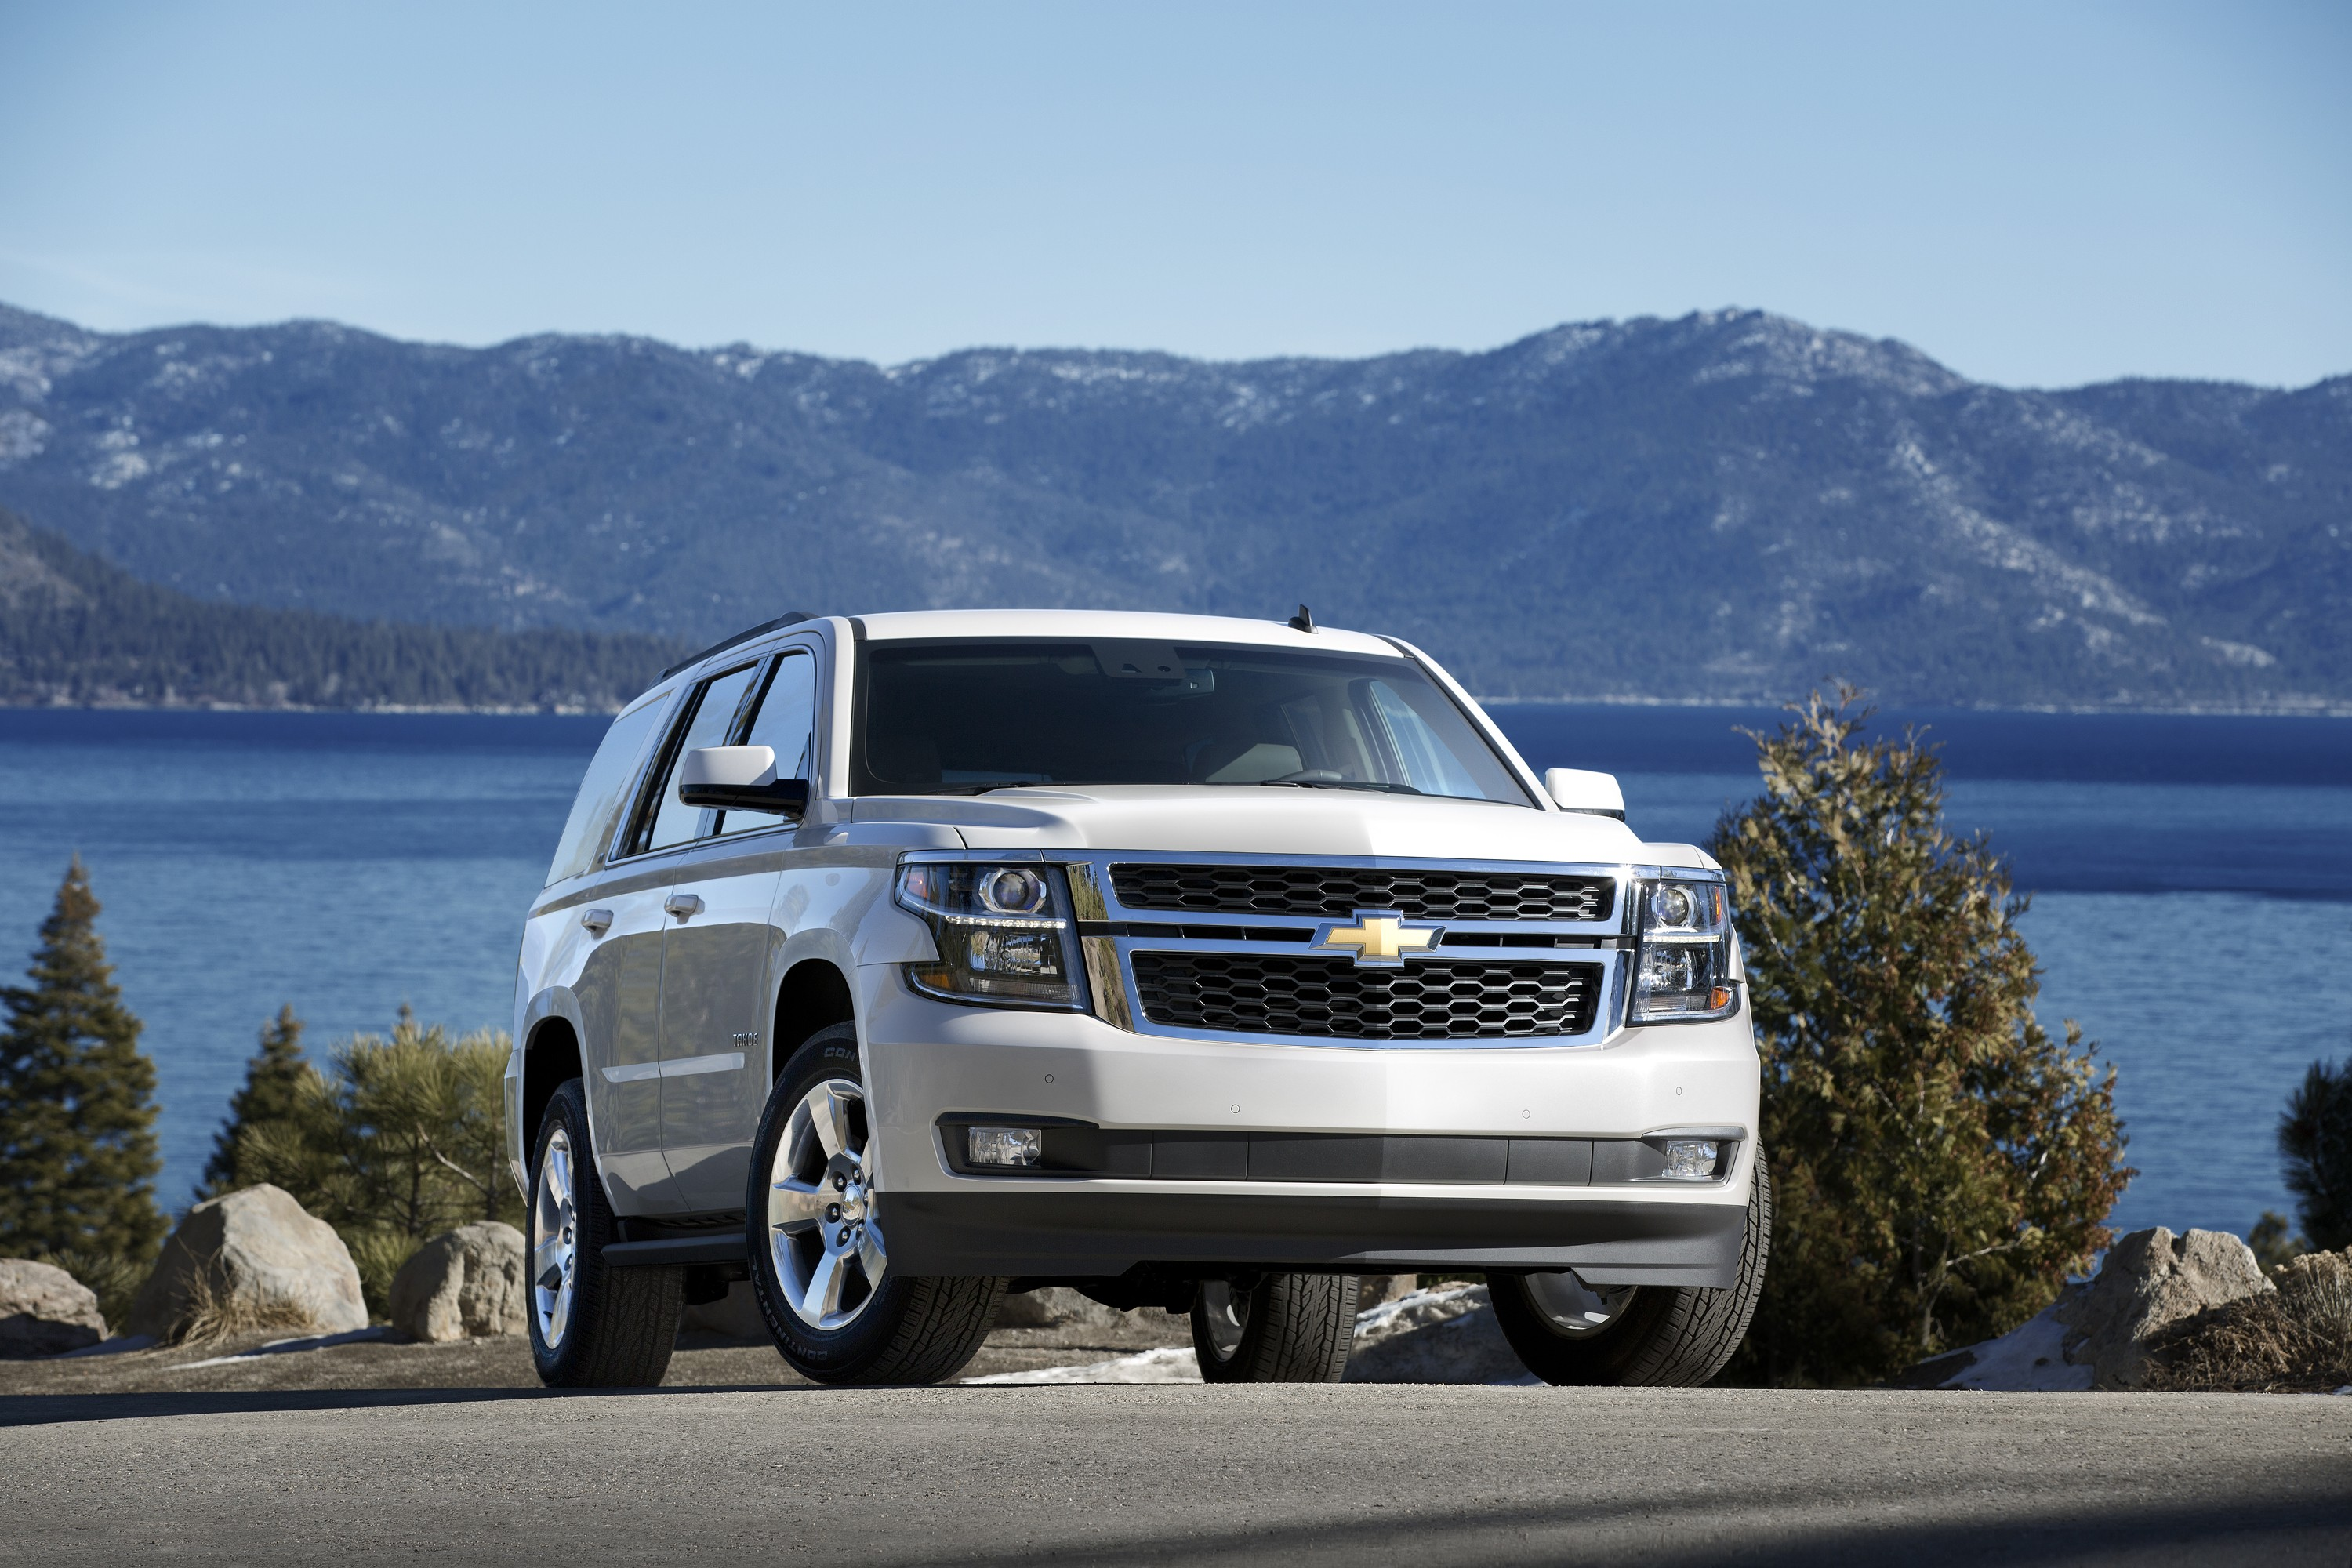 2016 chevrolet tahoe updates detailed hud and intellibeam headlamps included autoevolution. Black Bedroom Furniture Sets. Home Design Ideas